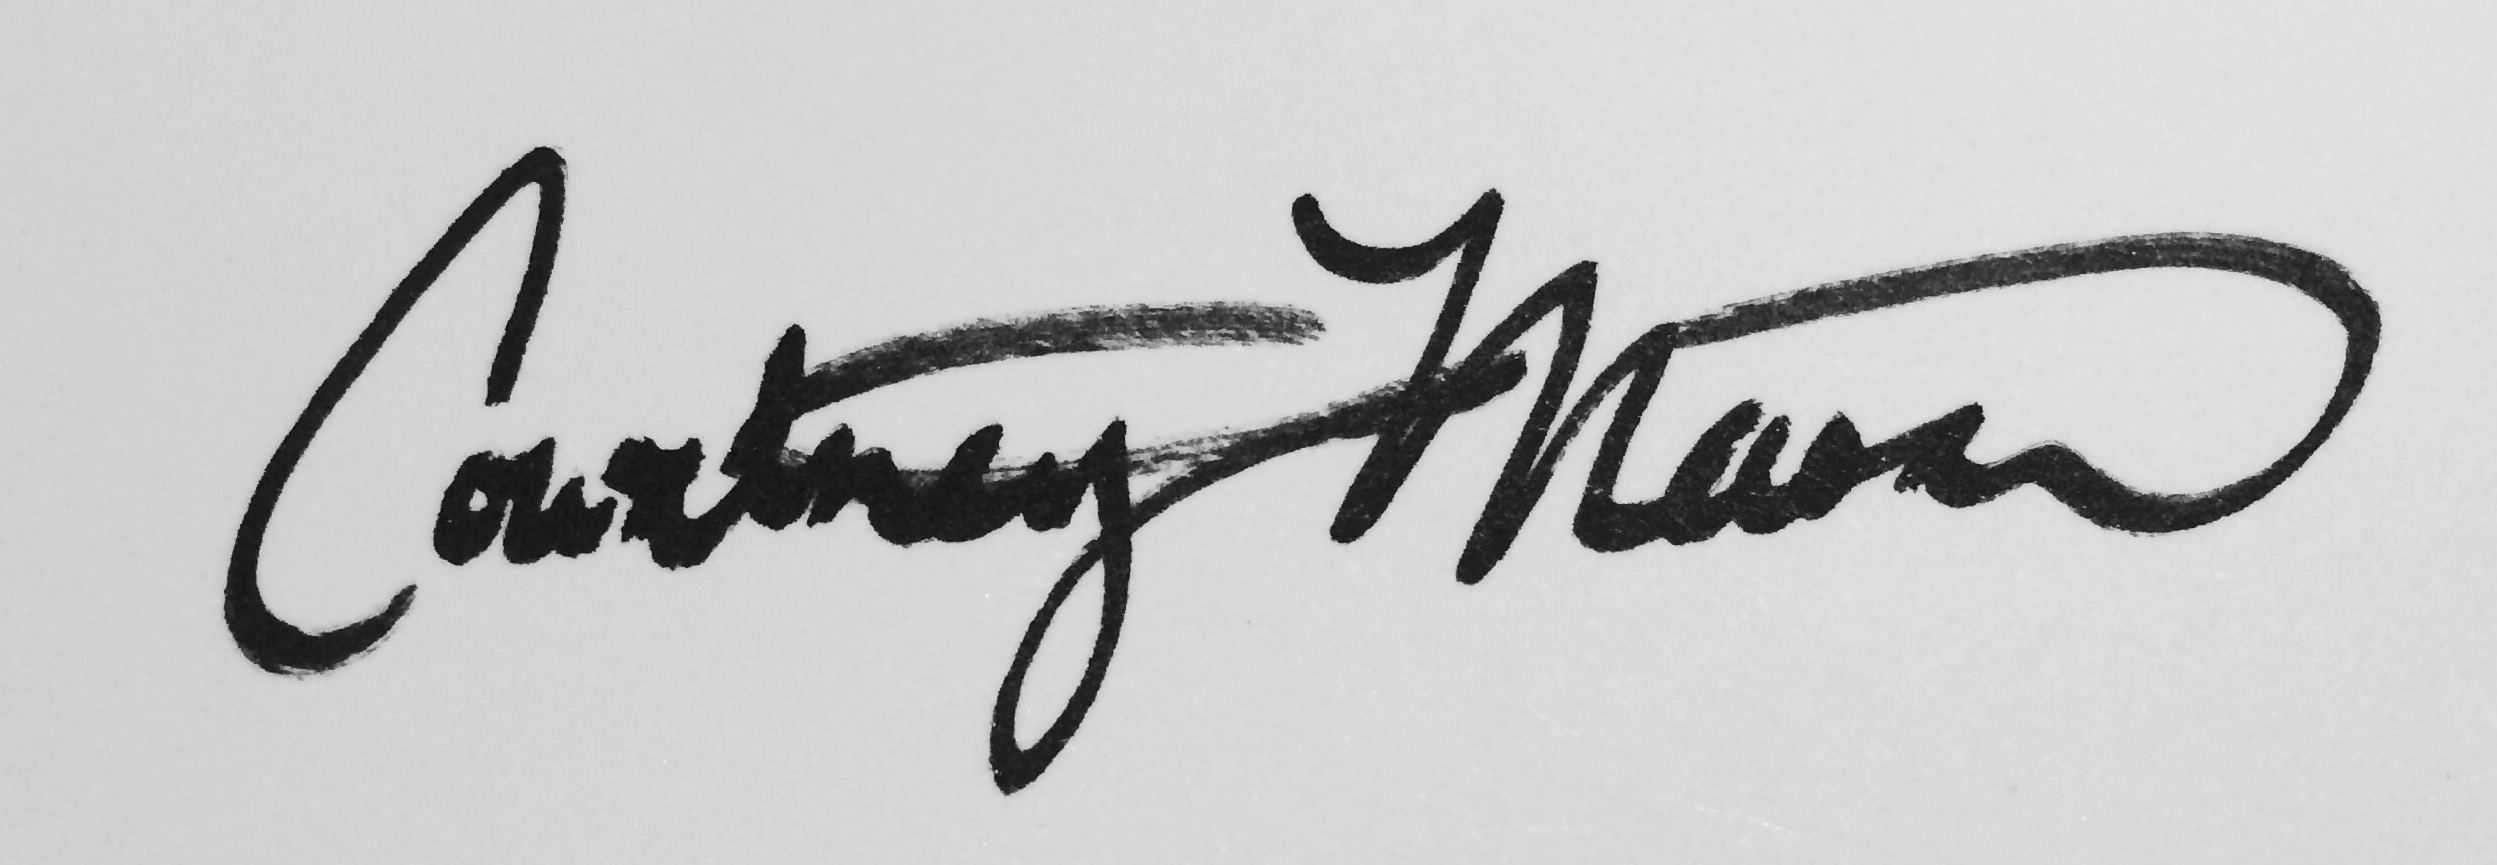 Courtney Mason Signature